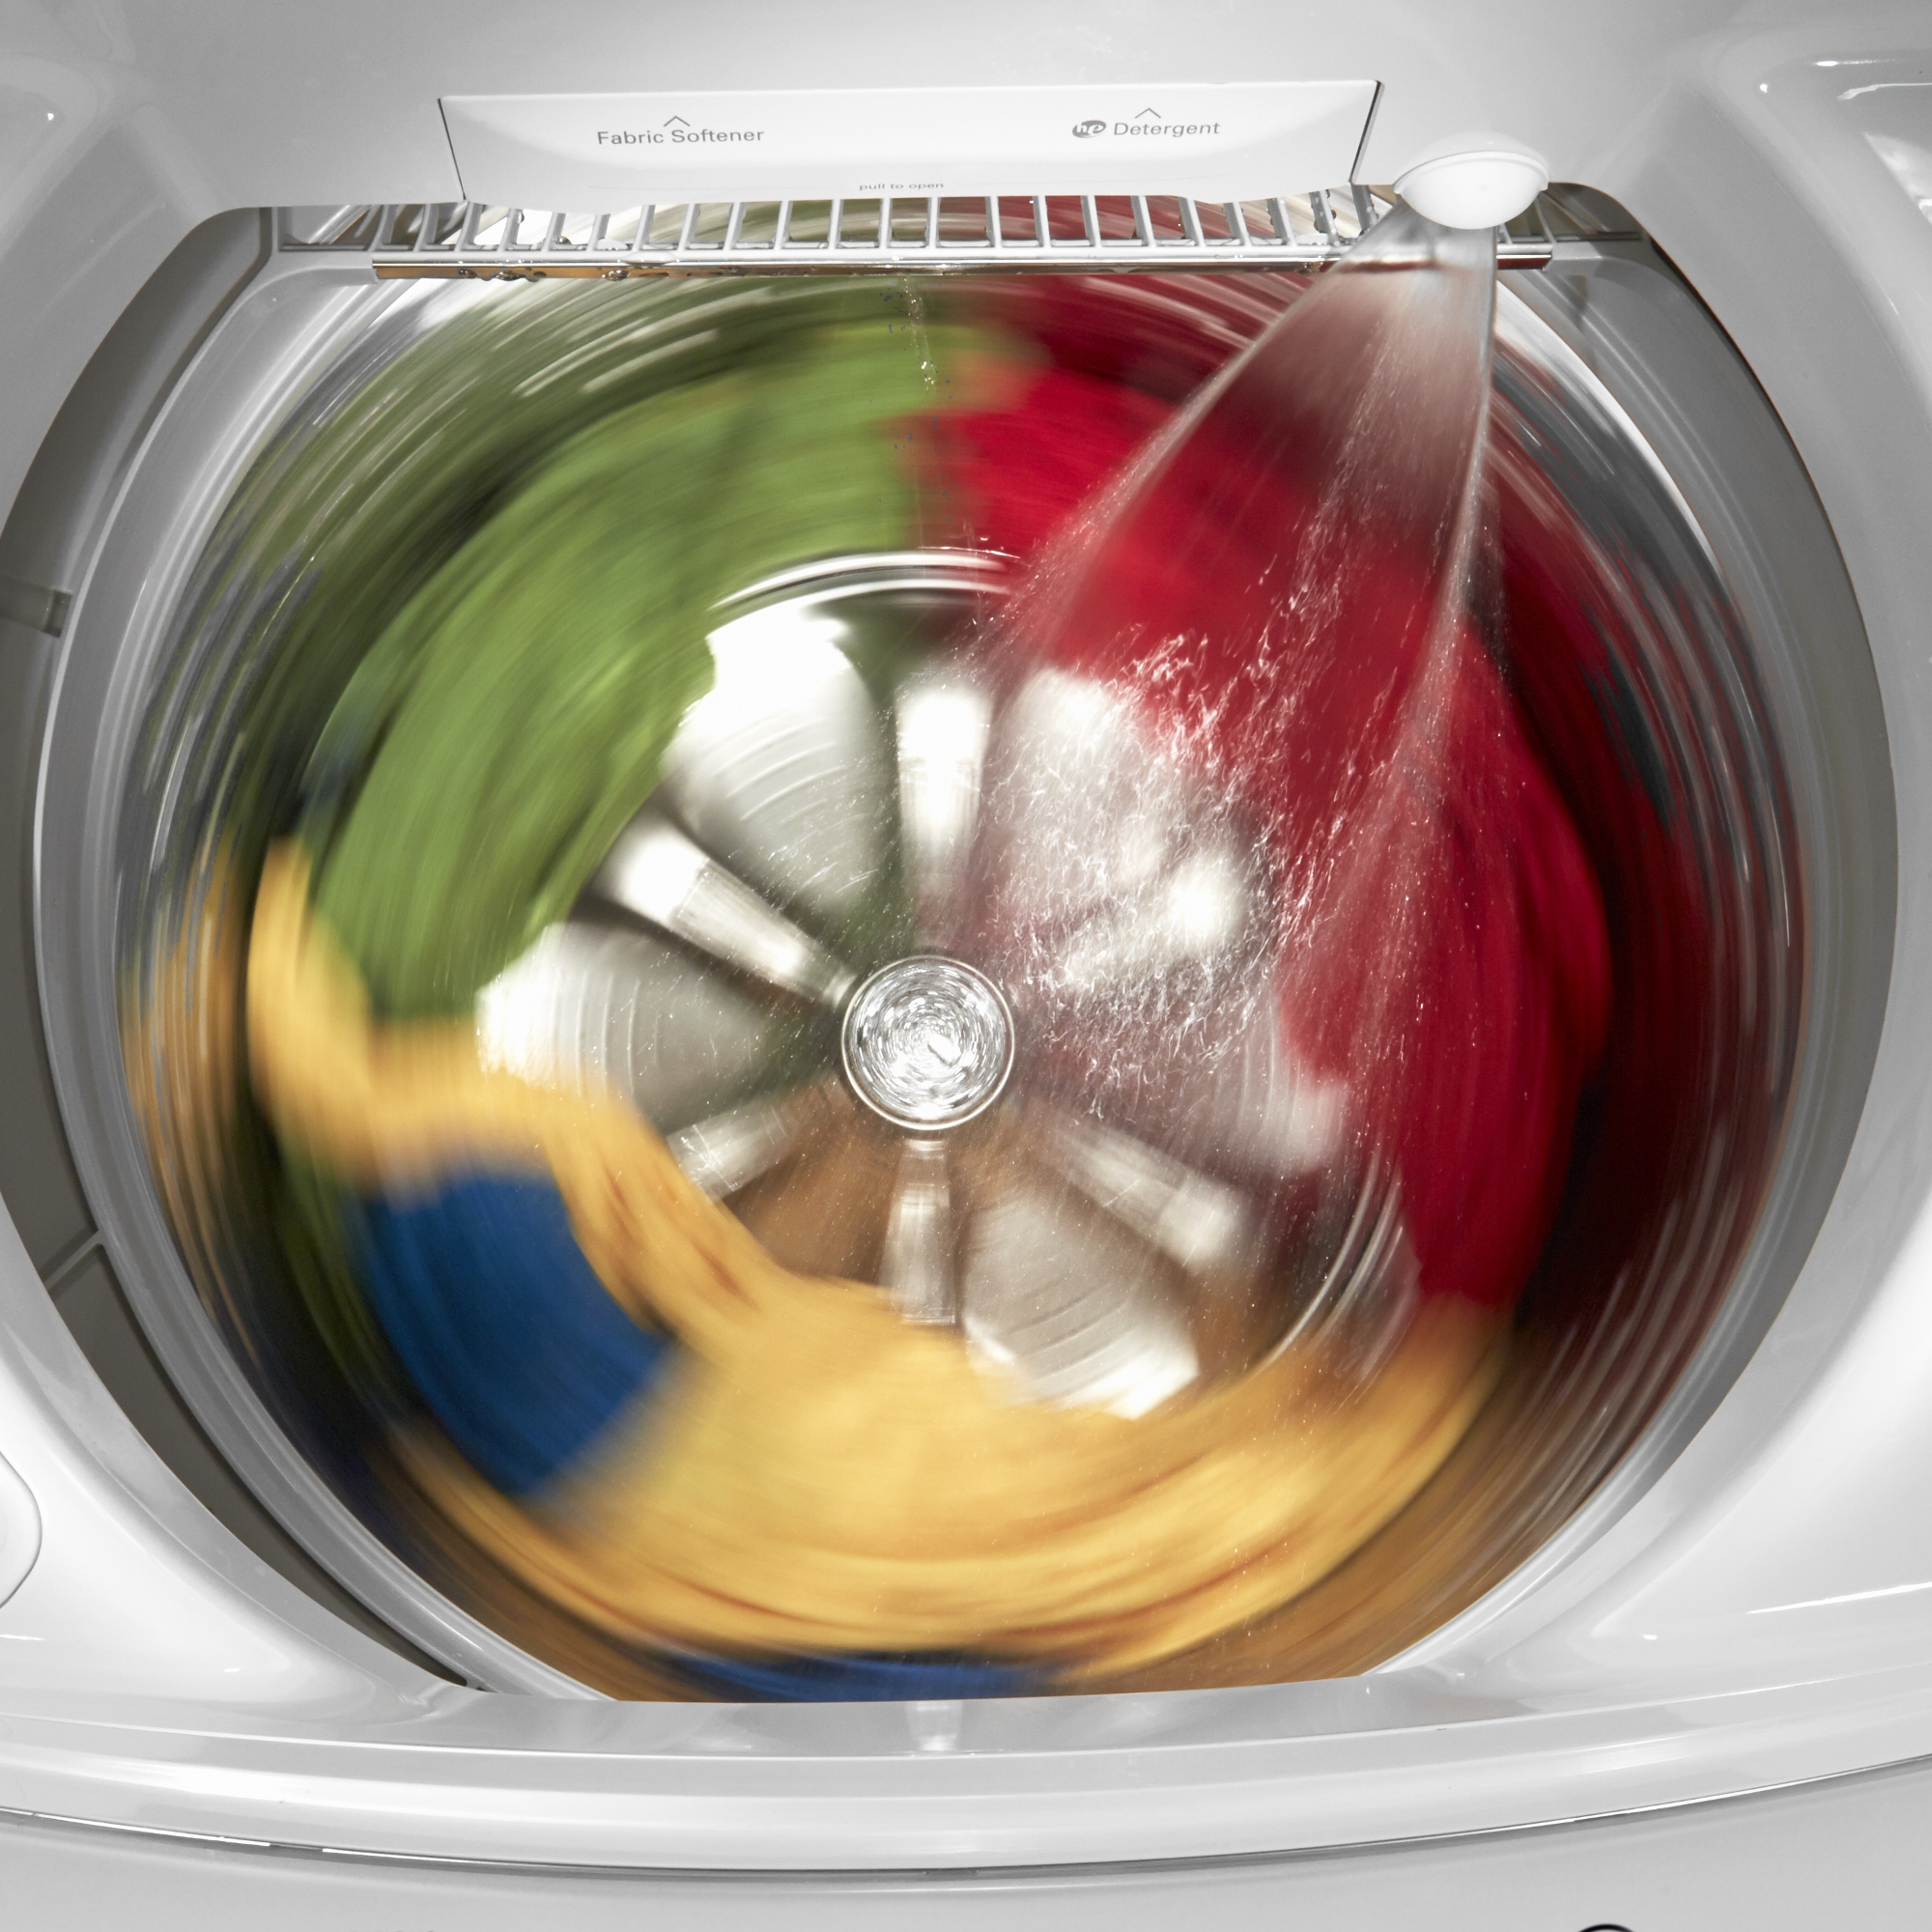 Kenmore Elite 5.2 cu. ft. Top-Load Washer w/ Steam & Ultra Wash Cycle  - White